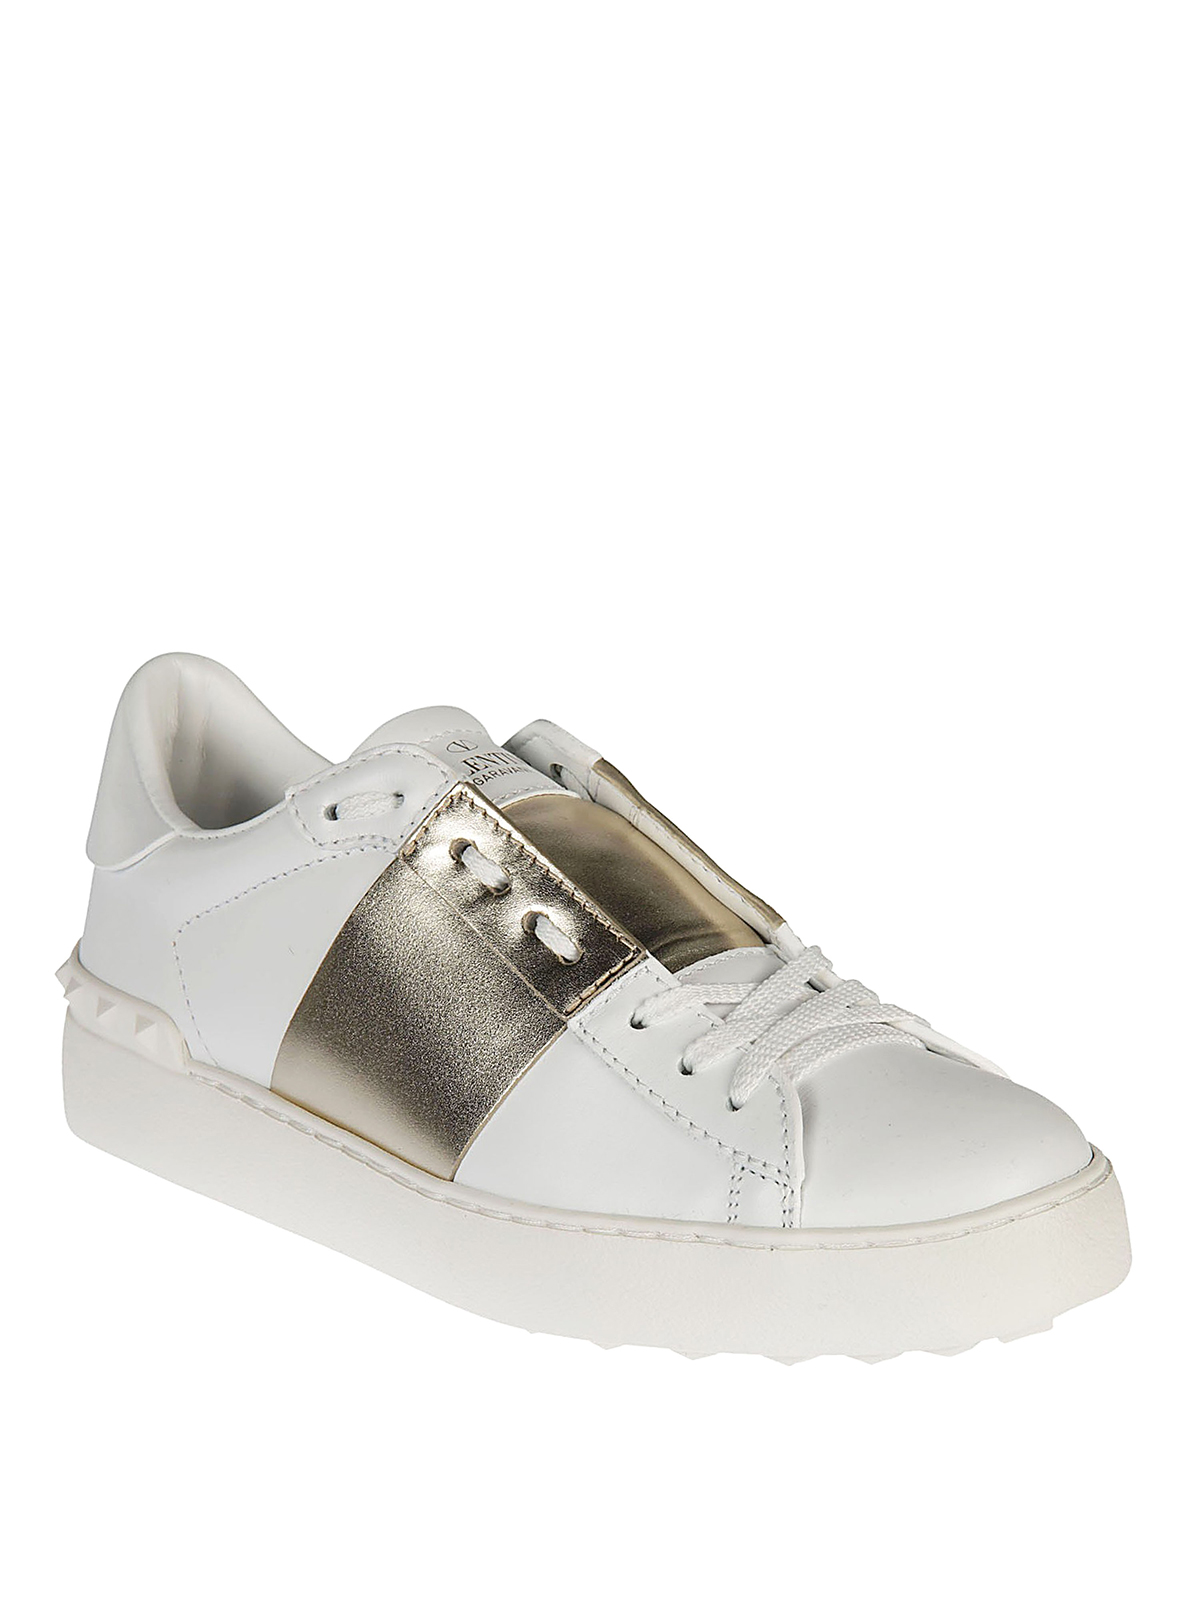 gold band leather sneakers